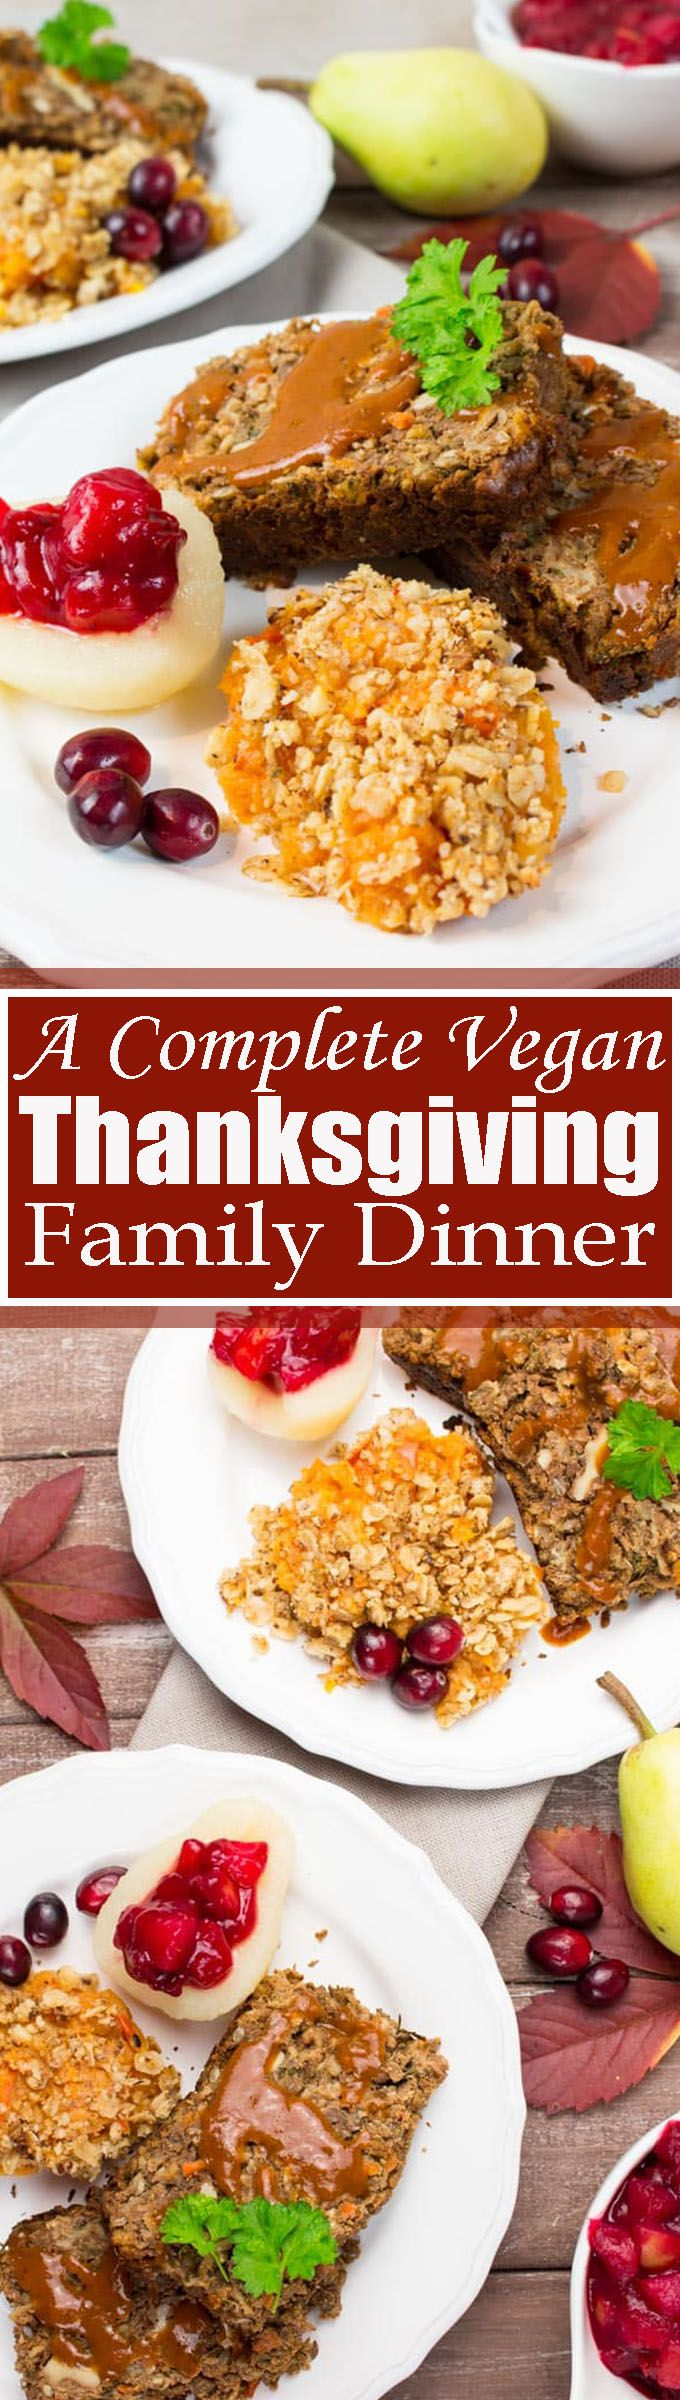 This vegan Thanksgiving dinner consists of a vegan lentil loaf, vegan gravy, a mashed sweet potato and pumpkin casserole, and pear cranberry sauce. It's so insanely delicious and family-approved!